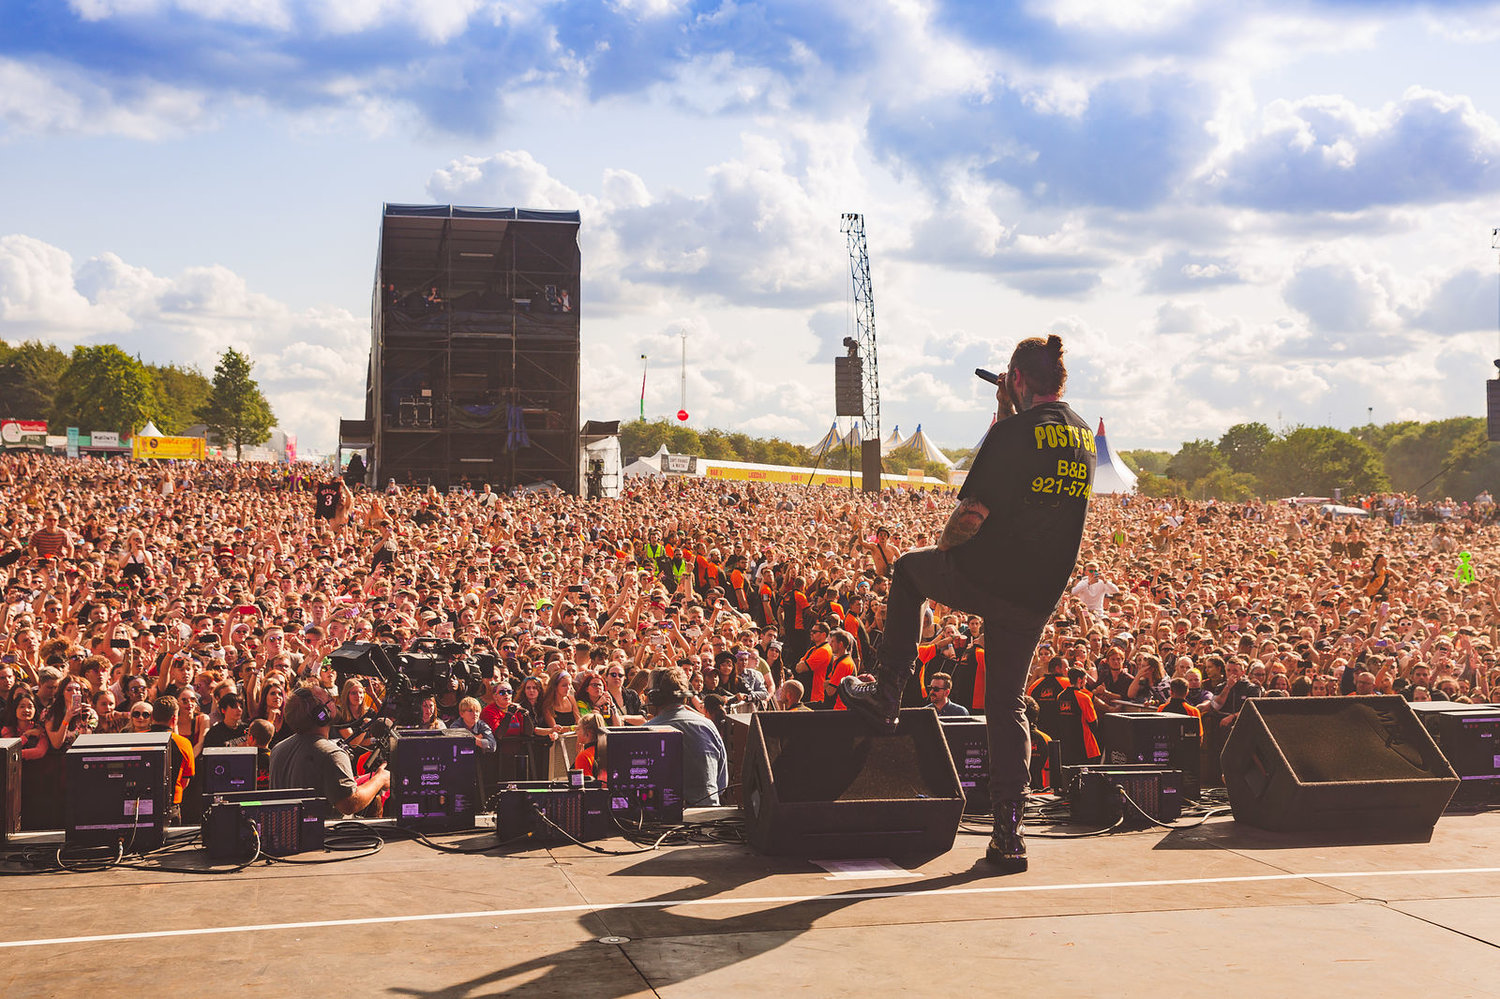 POST MALONE PERFORMING AT DAY TWO OF LEEDS FESTIVAL 2018 IN FRONT MASSIVE CROWD - 25.08.2018  PICTURE BY: LEWIS EVANS